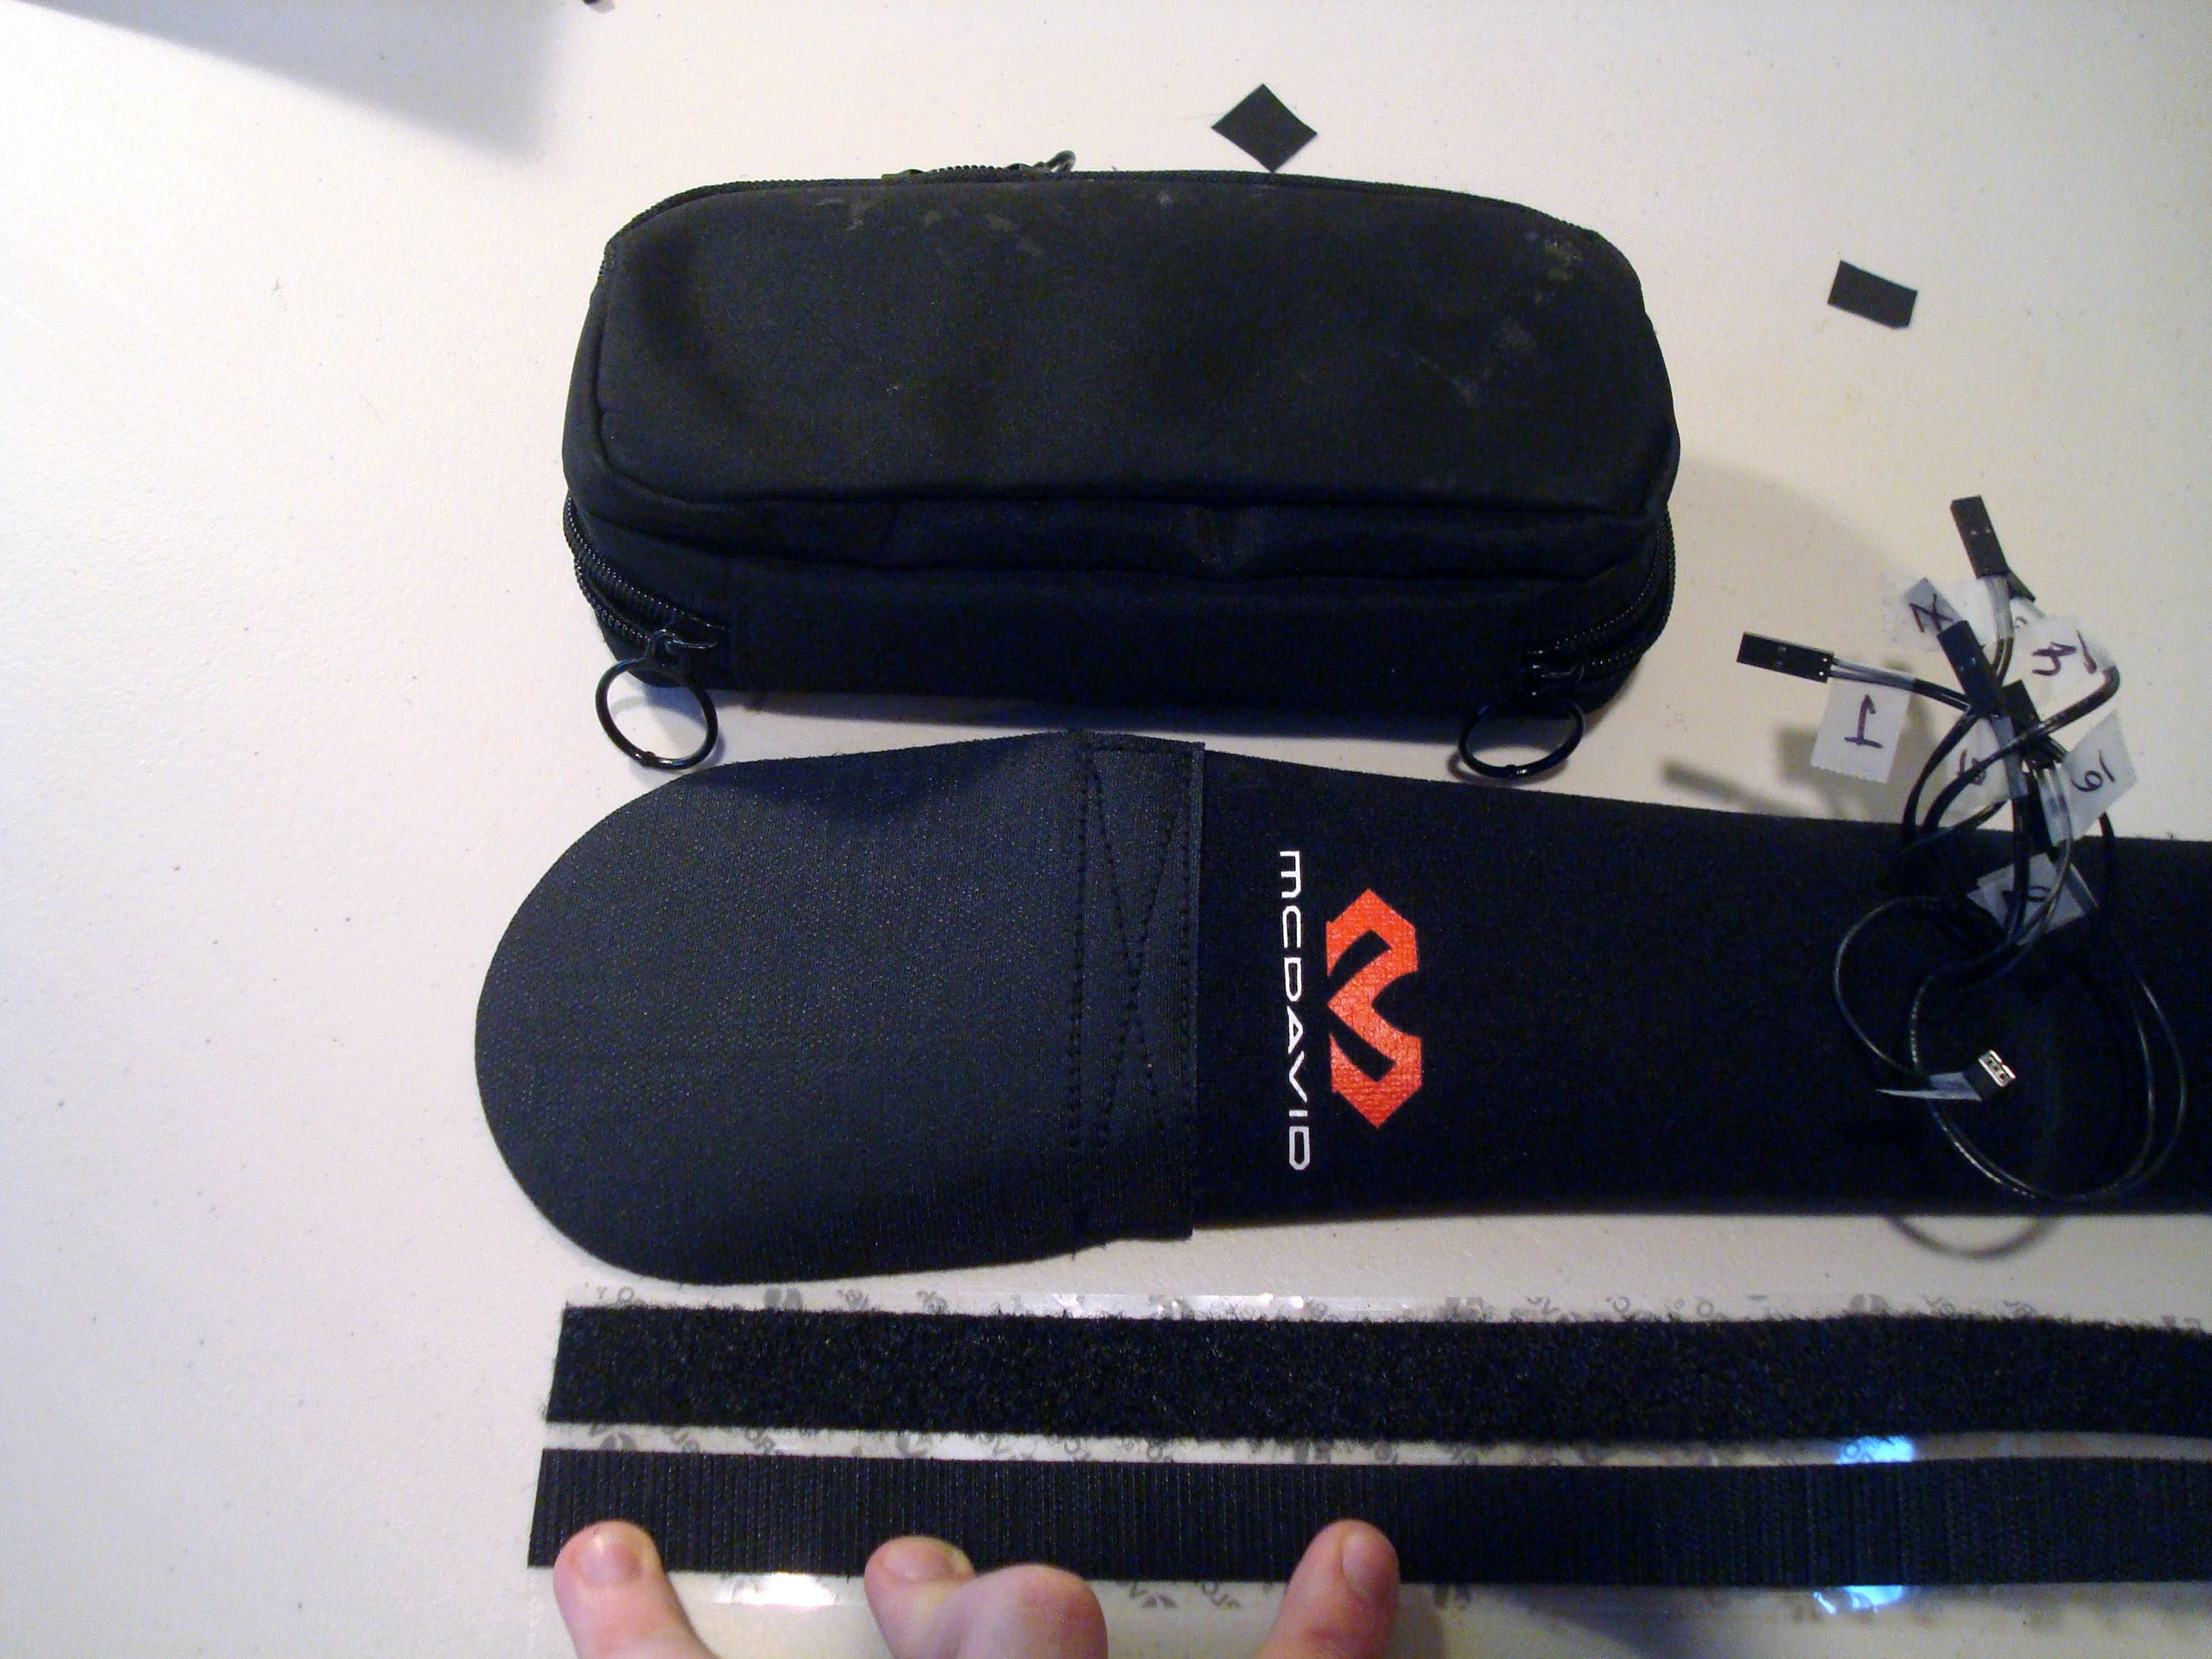 To attach the case that holds all the electronics, cut three more velcro strips about the length of the case.